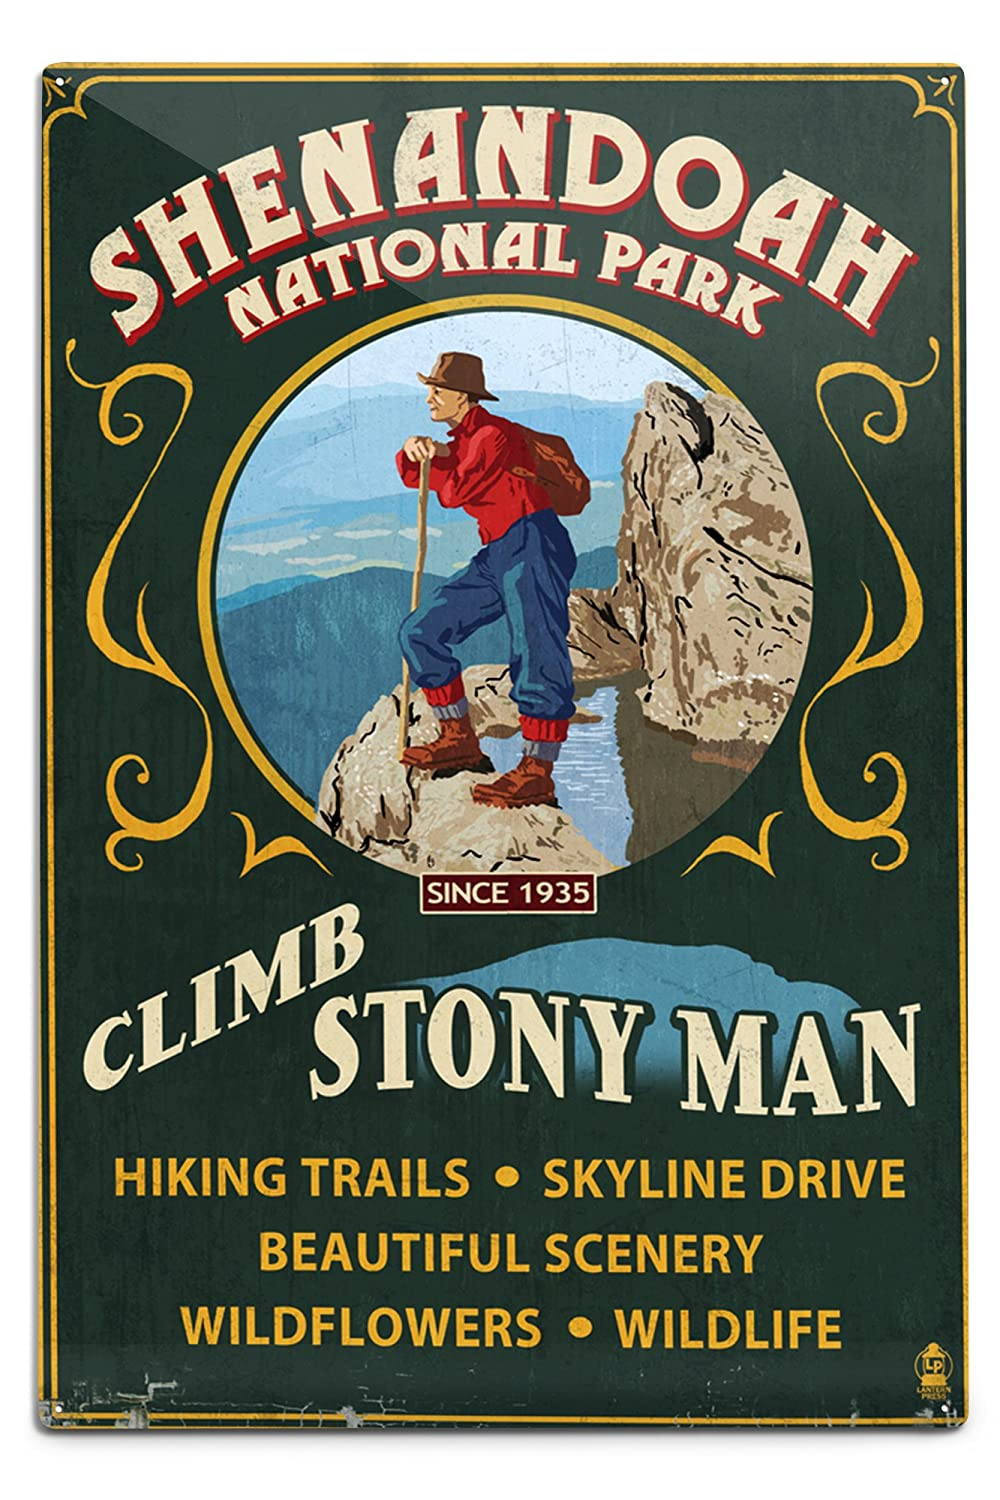 最安値級価格 Shenandoah国立公園 18、バージニア州 Sign – Climb Stony Man Vintage Sign 12 9 x 12 Art Print LANT-42285-9x12 B06Y1FF1V7 12 x 18 Metal Sign 12 x 18 Metal Sign, ファッション雑貨オーバーフラッグ:6486be9a --- arianechie.dominiotemporario.com